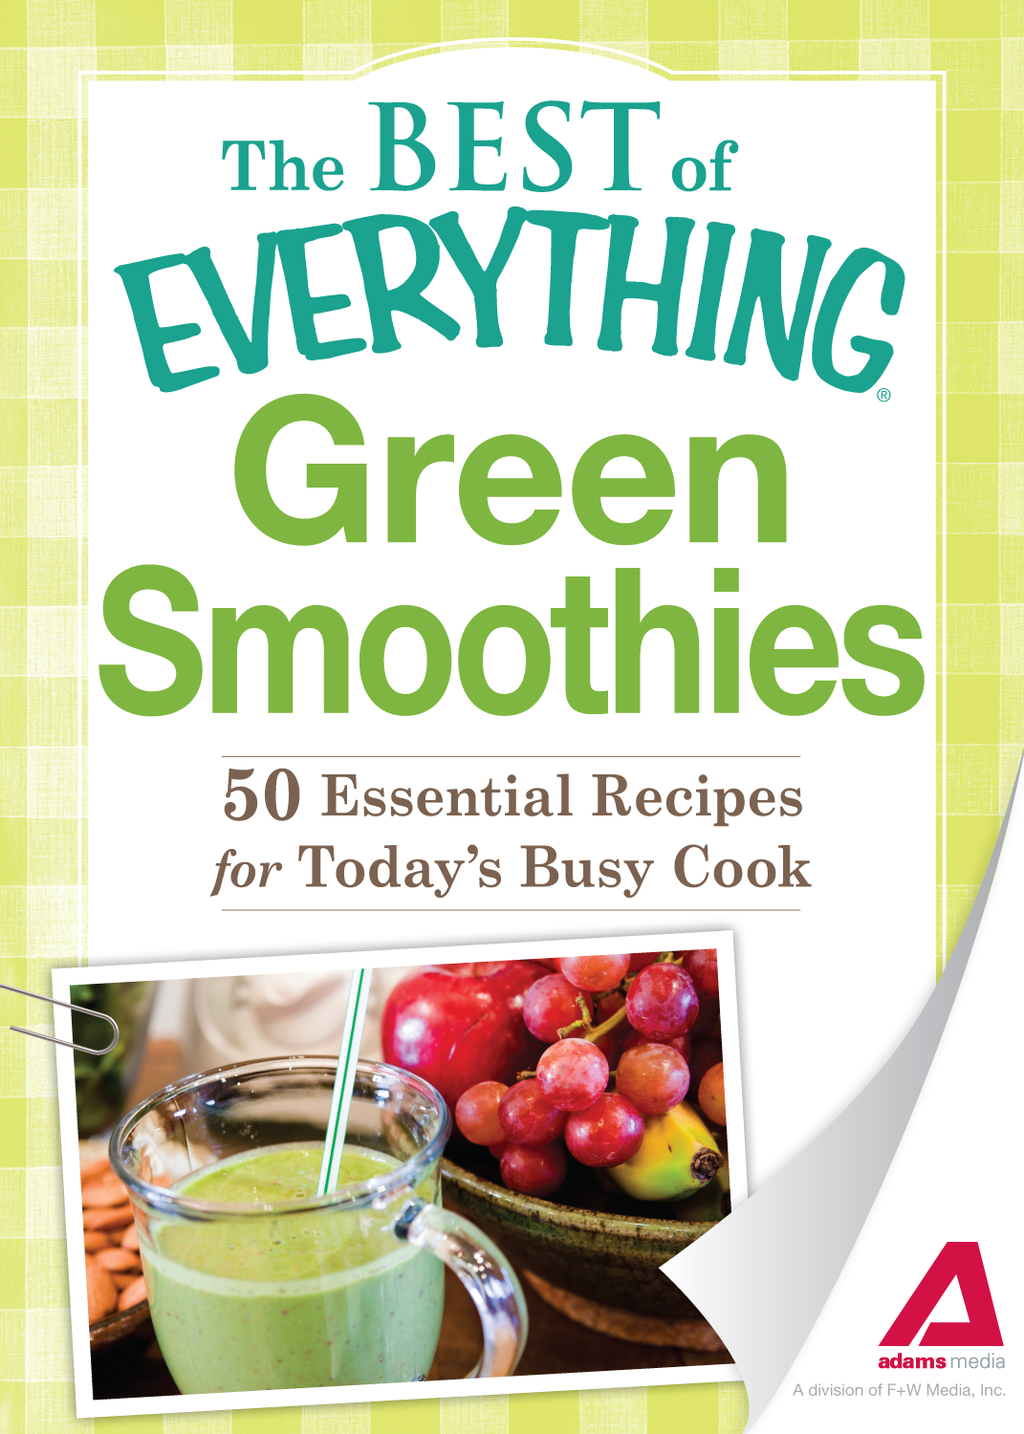 Green Smoothies: 50 Essential Recipes for Today's Busy Cook By: Adams Media